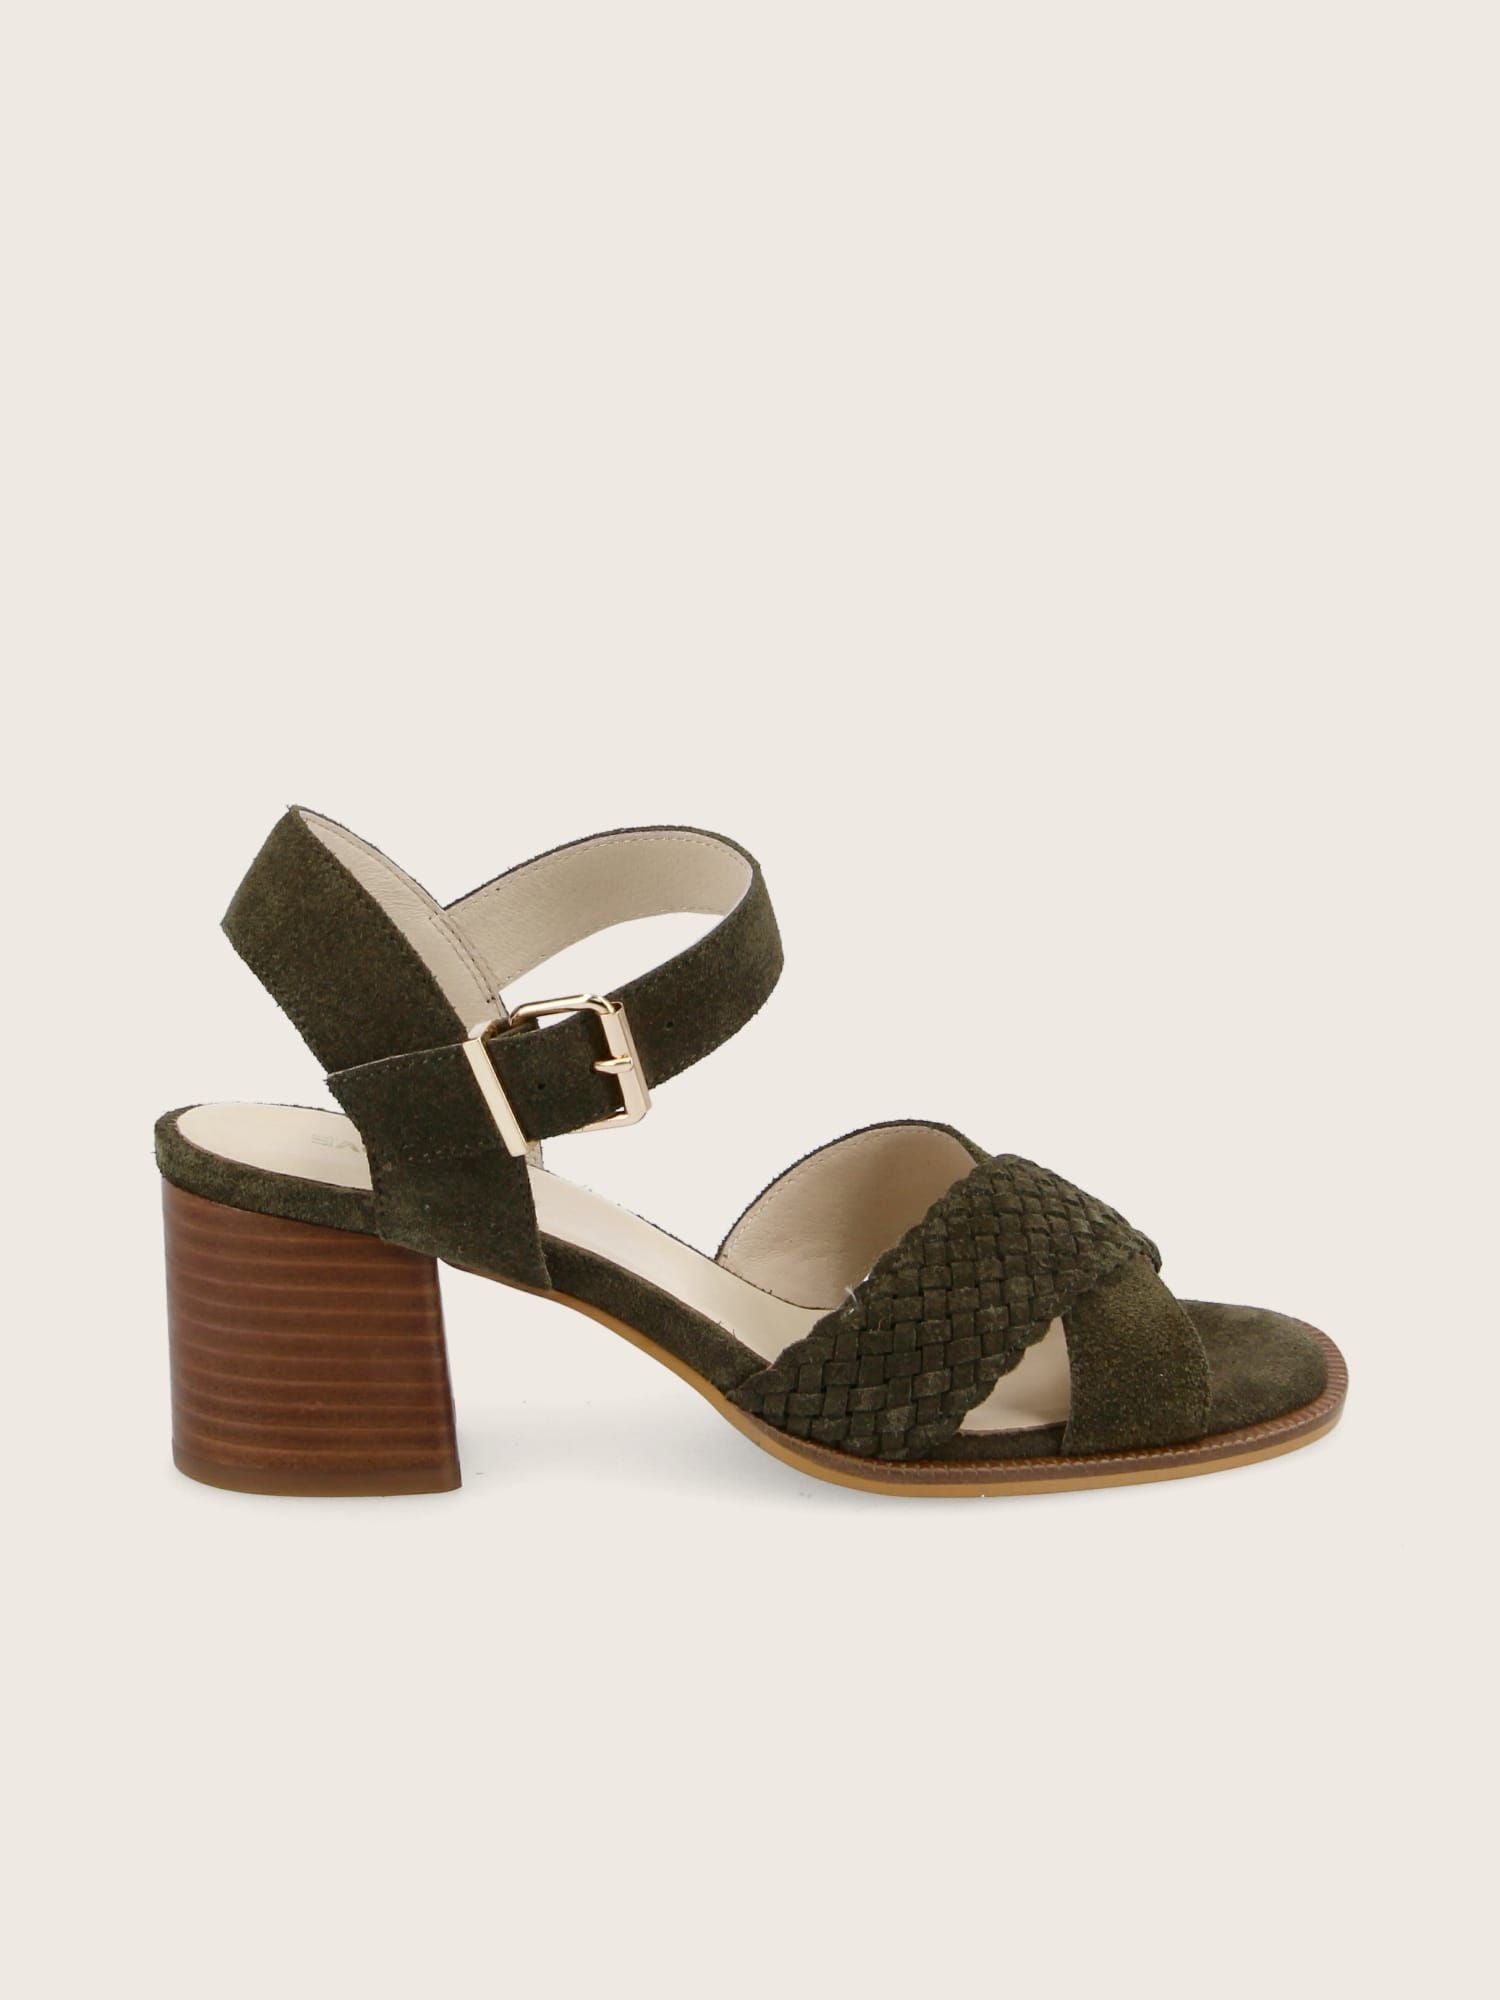 Sandales SCHMOOVE  olive